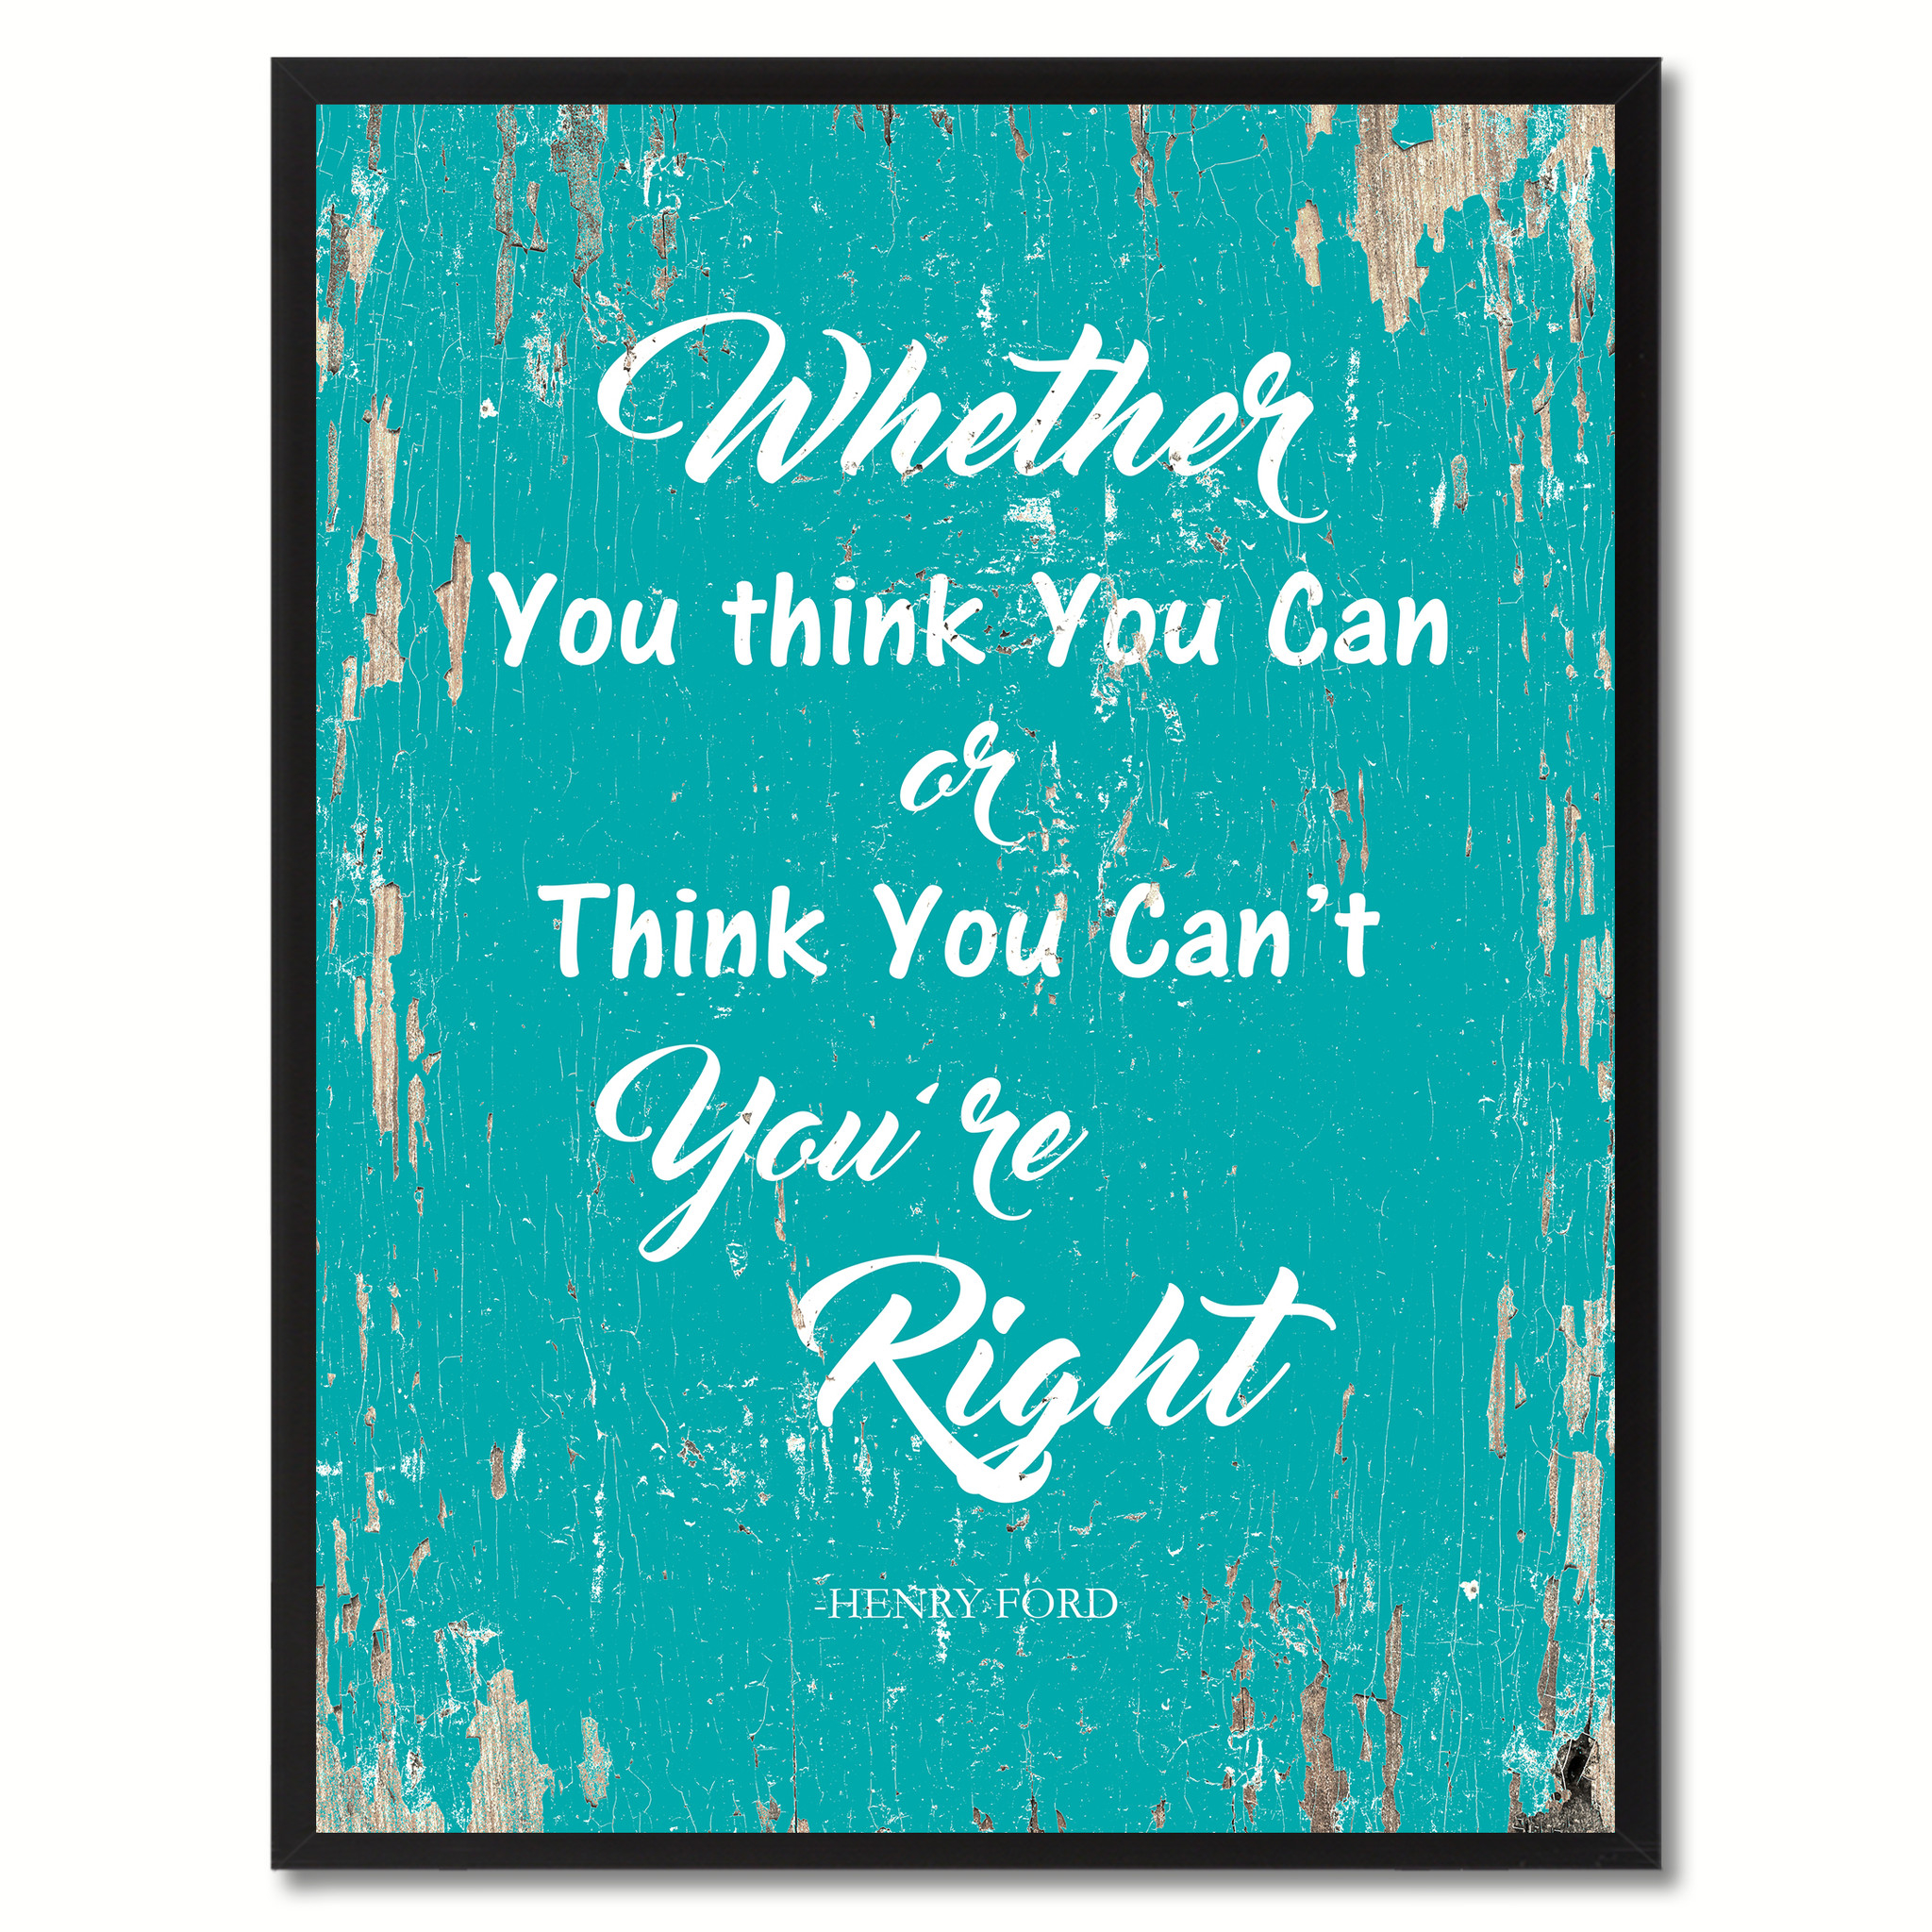 "Whether You Think You Can Or Think You Can't You are Right Inspirational Quote Saying Gift Ideas Home Décor Wall Art - 7""x9\"""